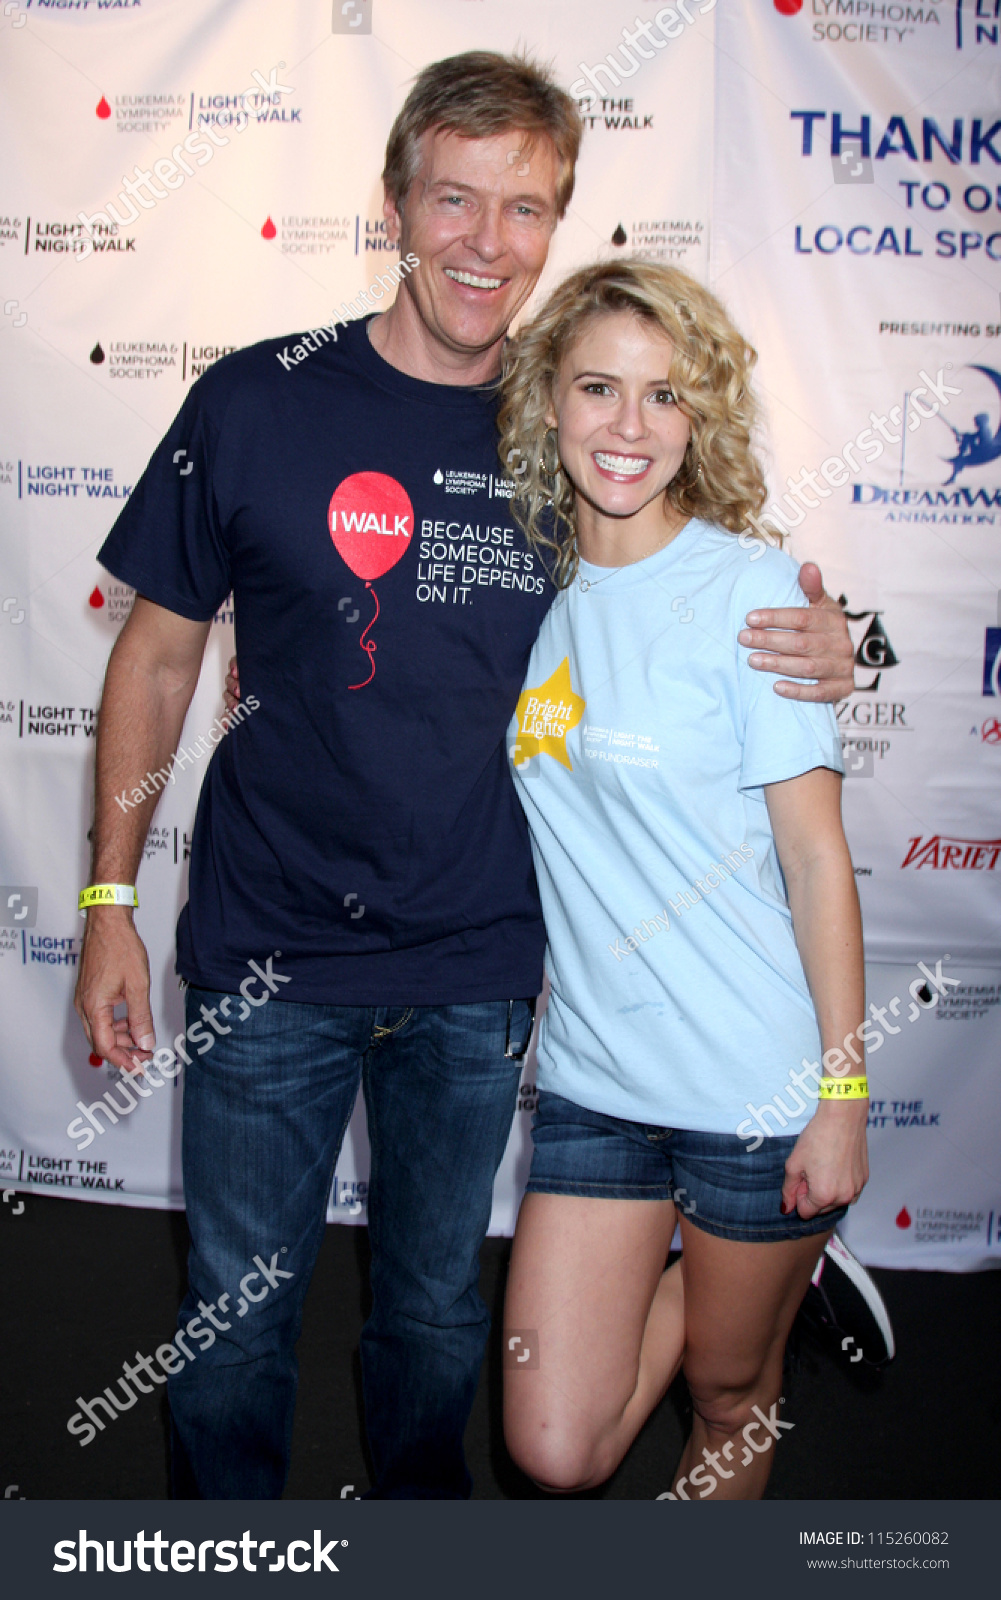 Jack Wagner Wife Good los angeles oct 6 jack wagner stock photo 115260082 - shutterstock